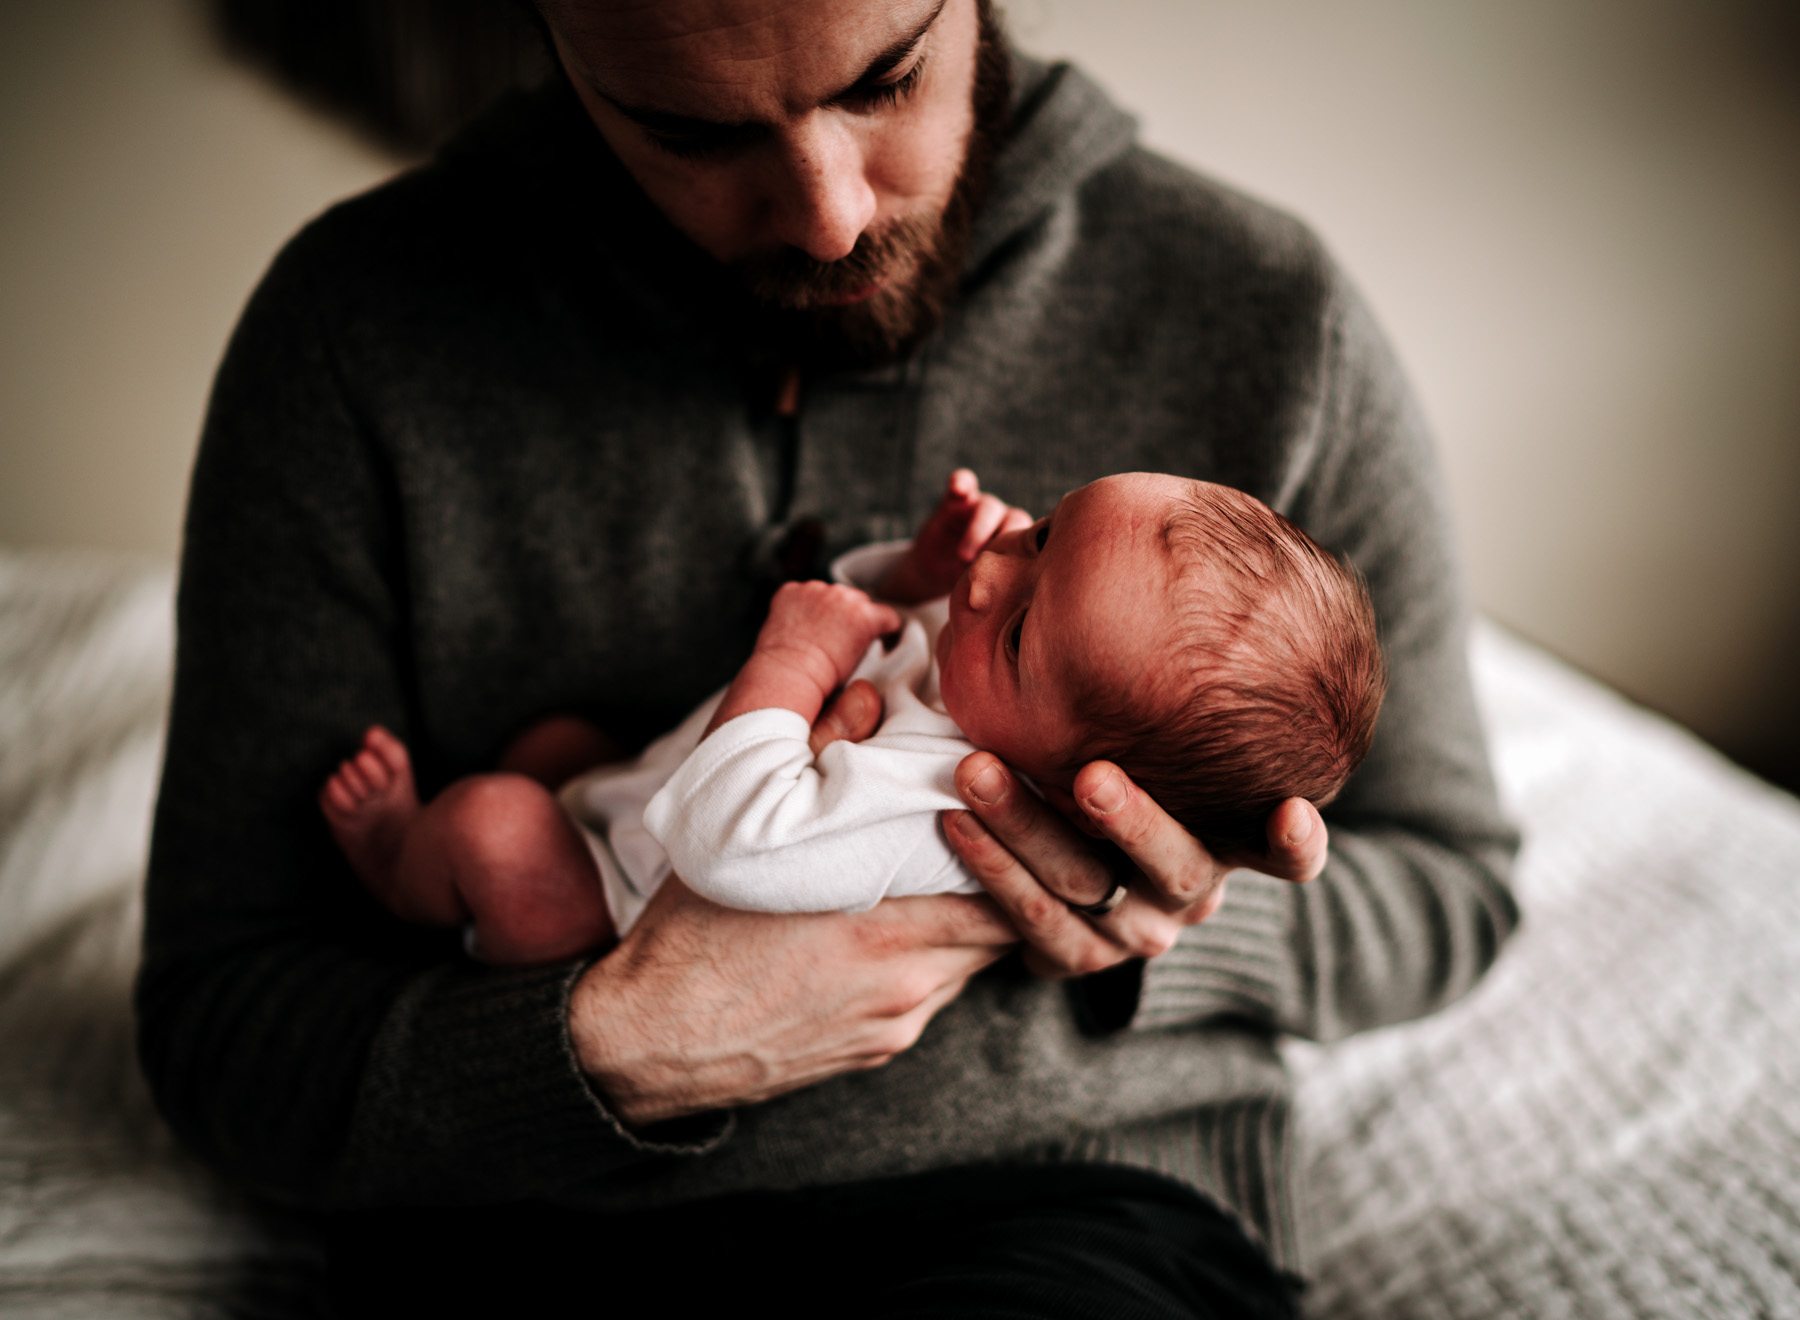 anchorage-wasilla-newborn-photographer-201925_16.jpg